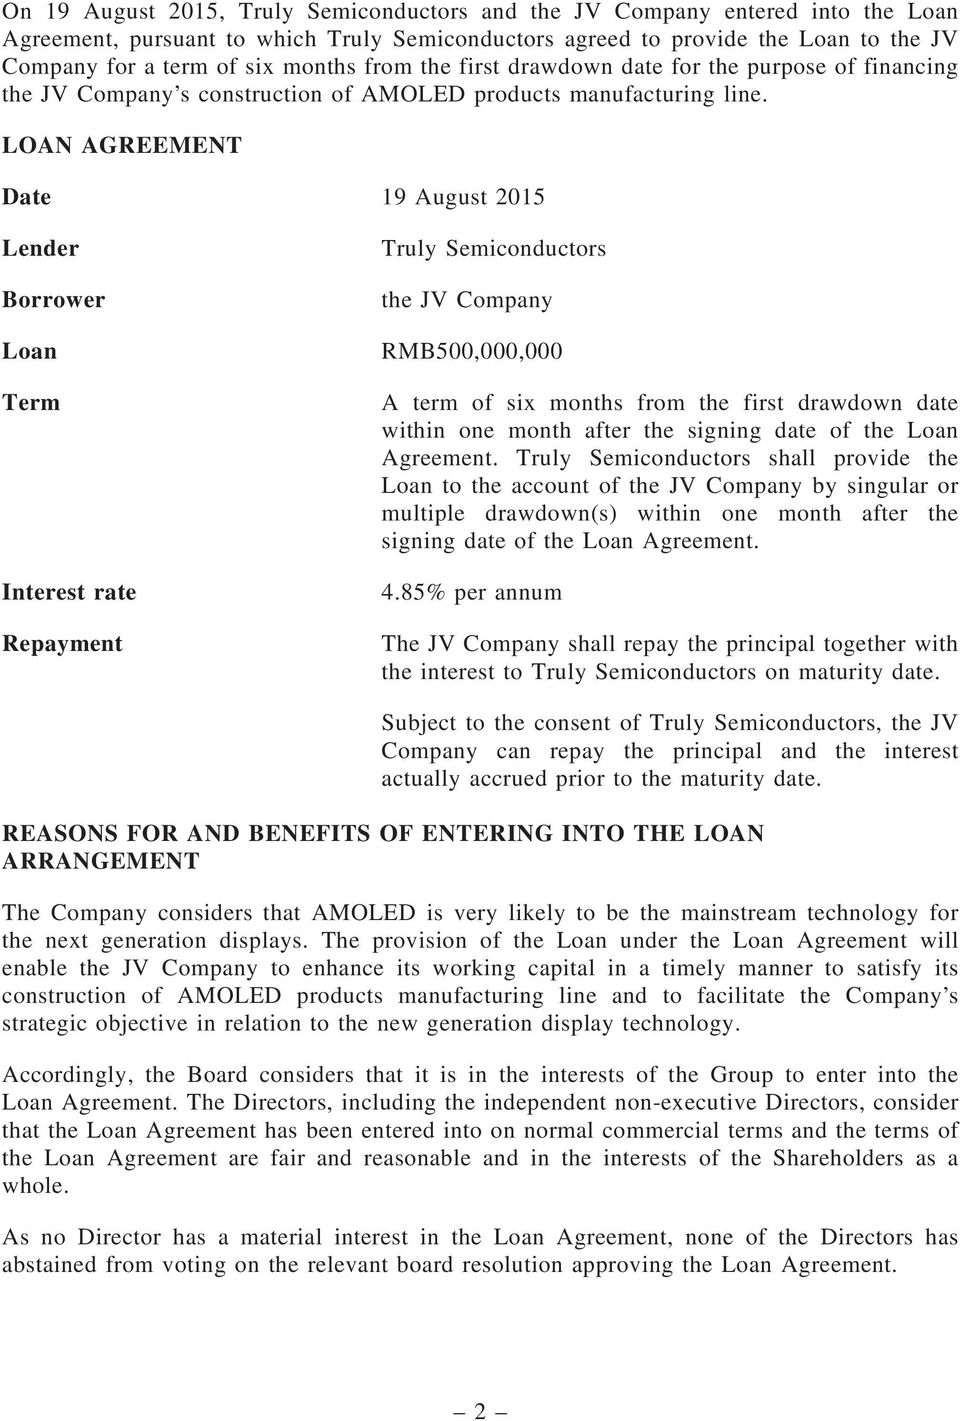 Date 19 August 2015 Lender Borrower Loan Term Interest rate Repayment Truly Semiconductors the JV Company RMB500,000,000 A term of six months from the first drawdown date within one month after the